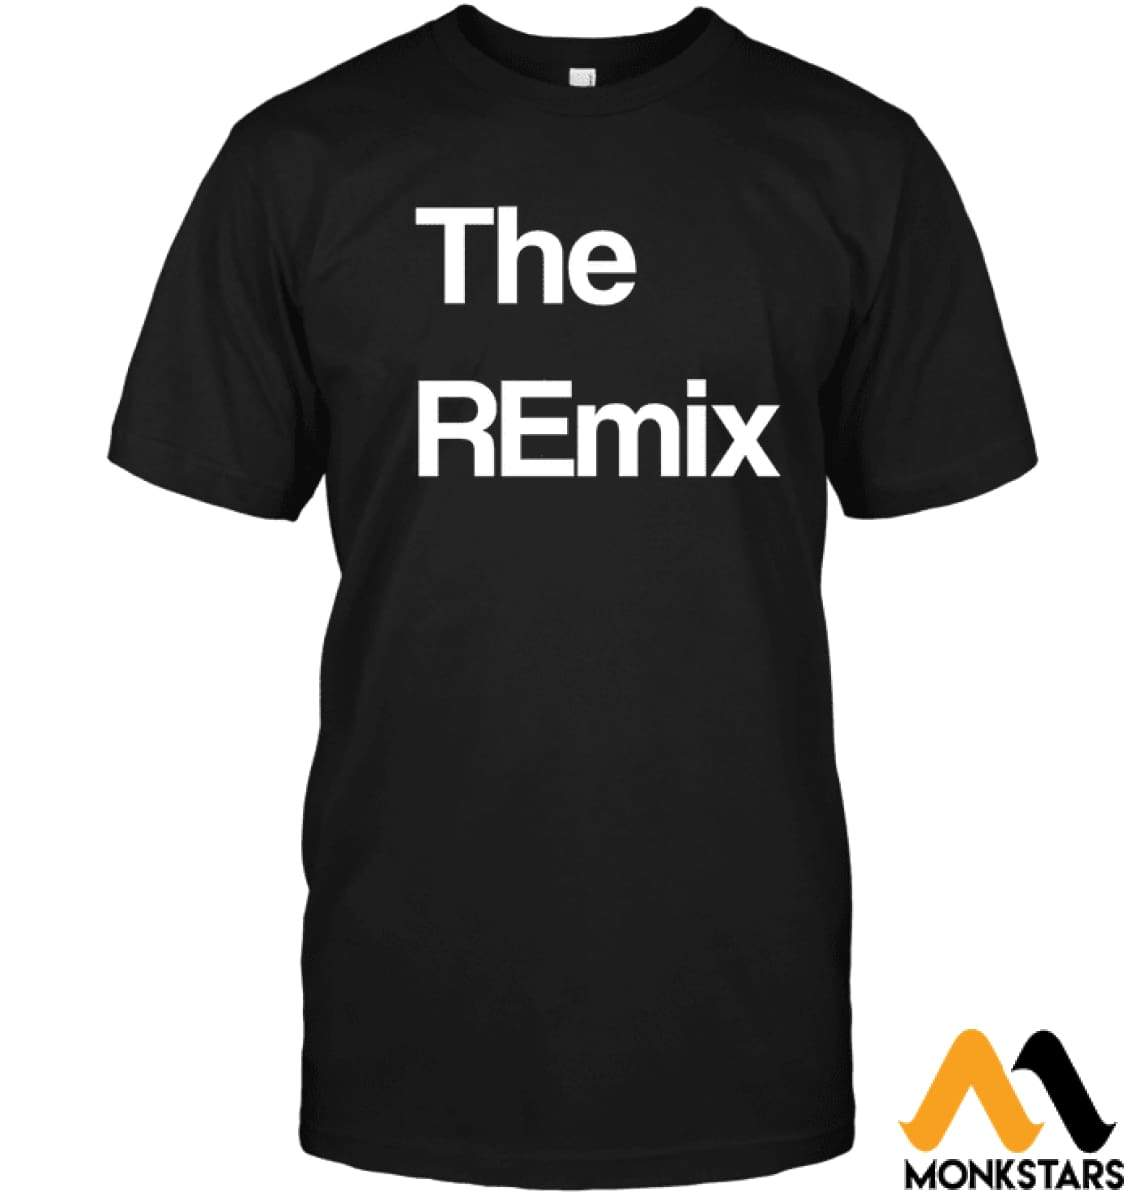 Son - Theremix Hanes Tagless Tee / Black S Apparel